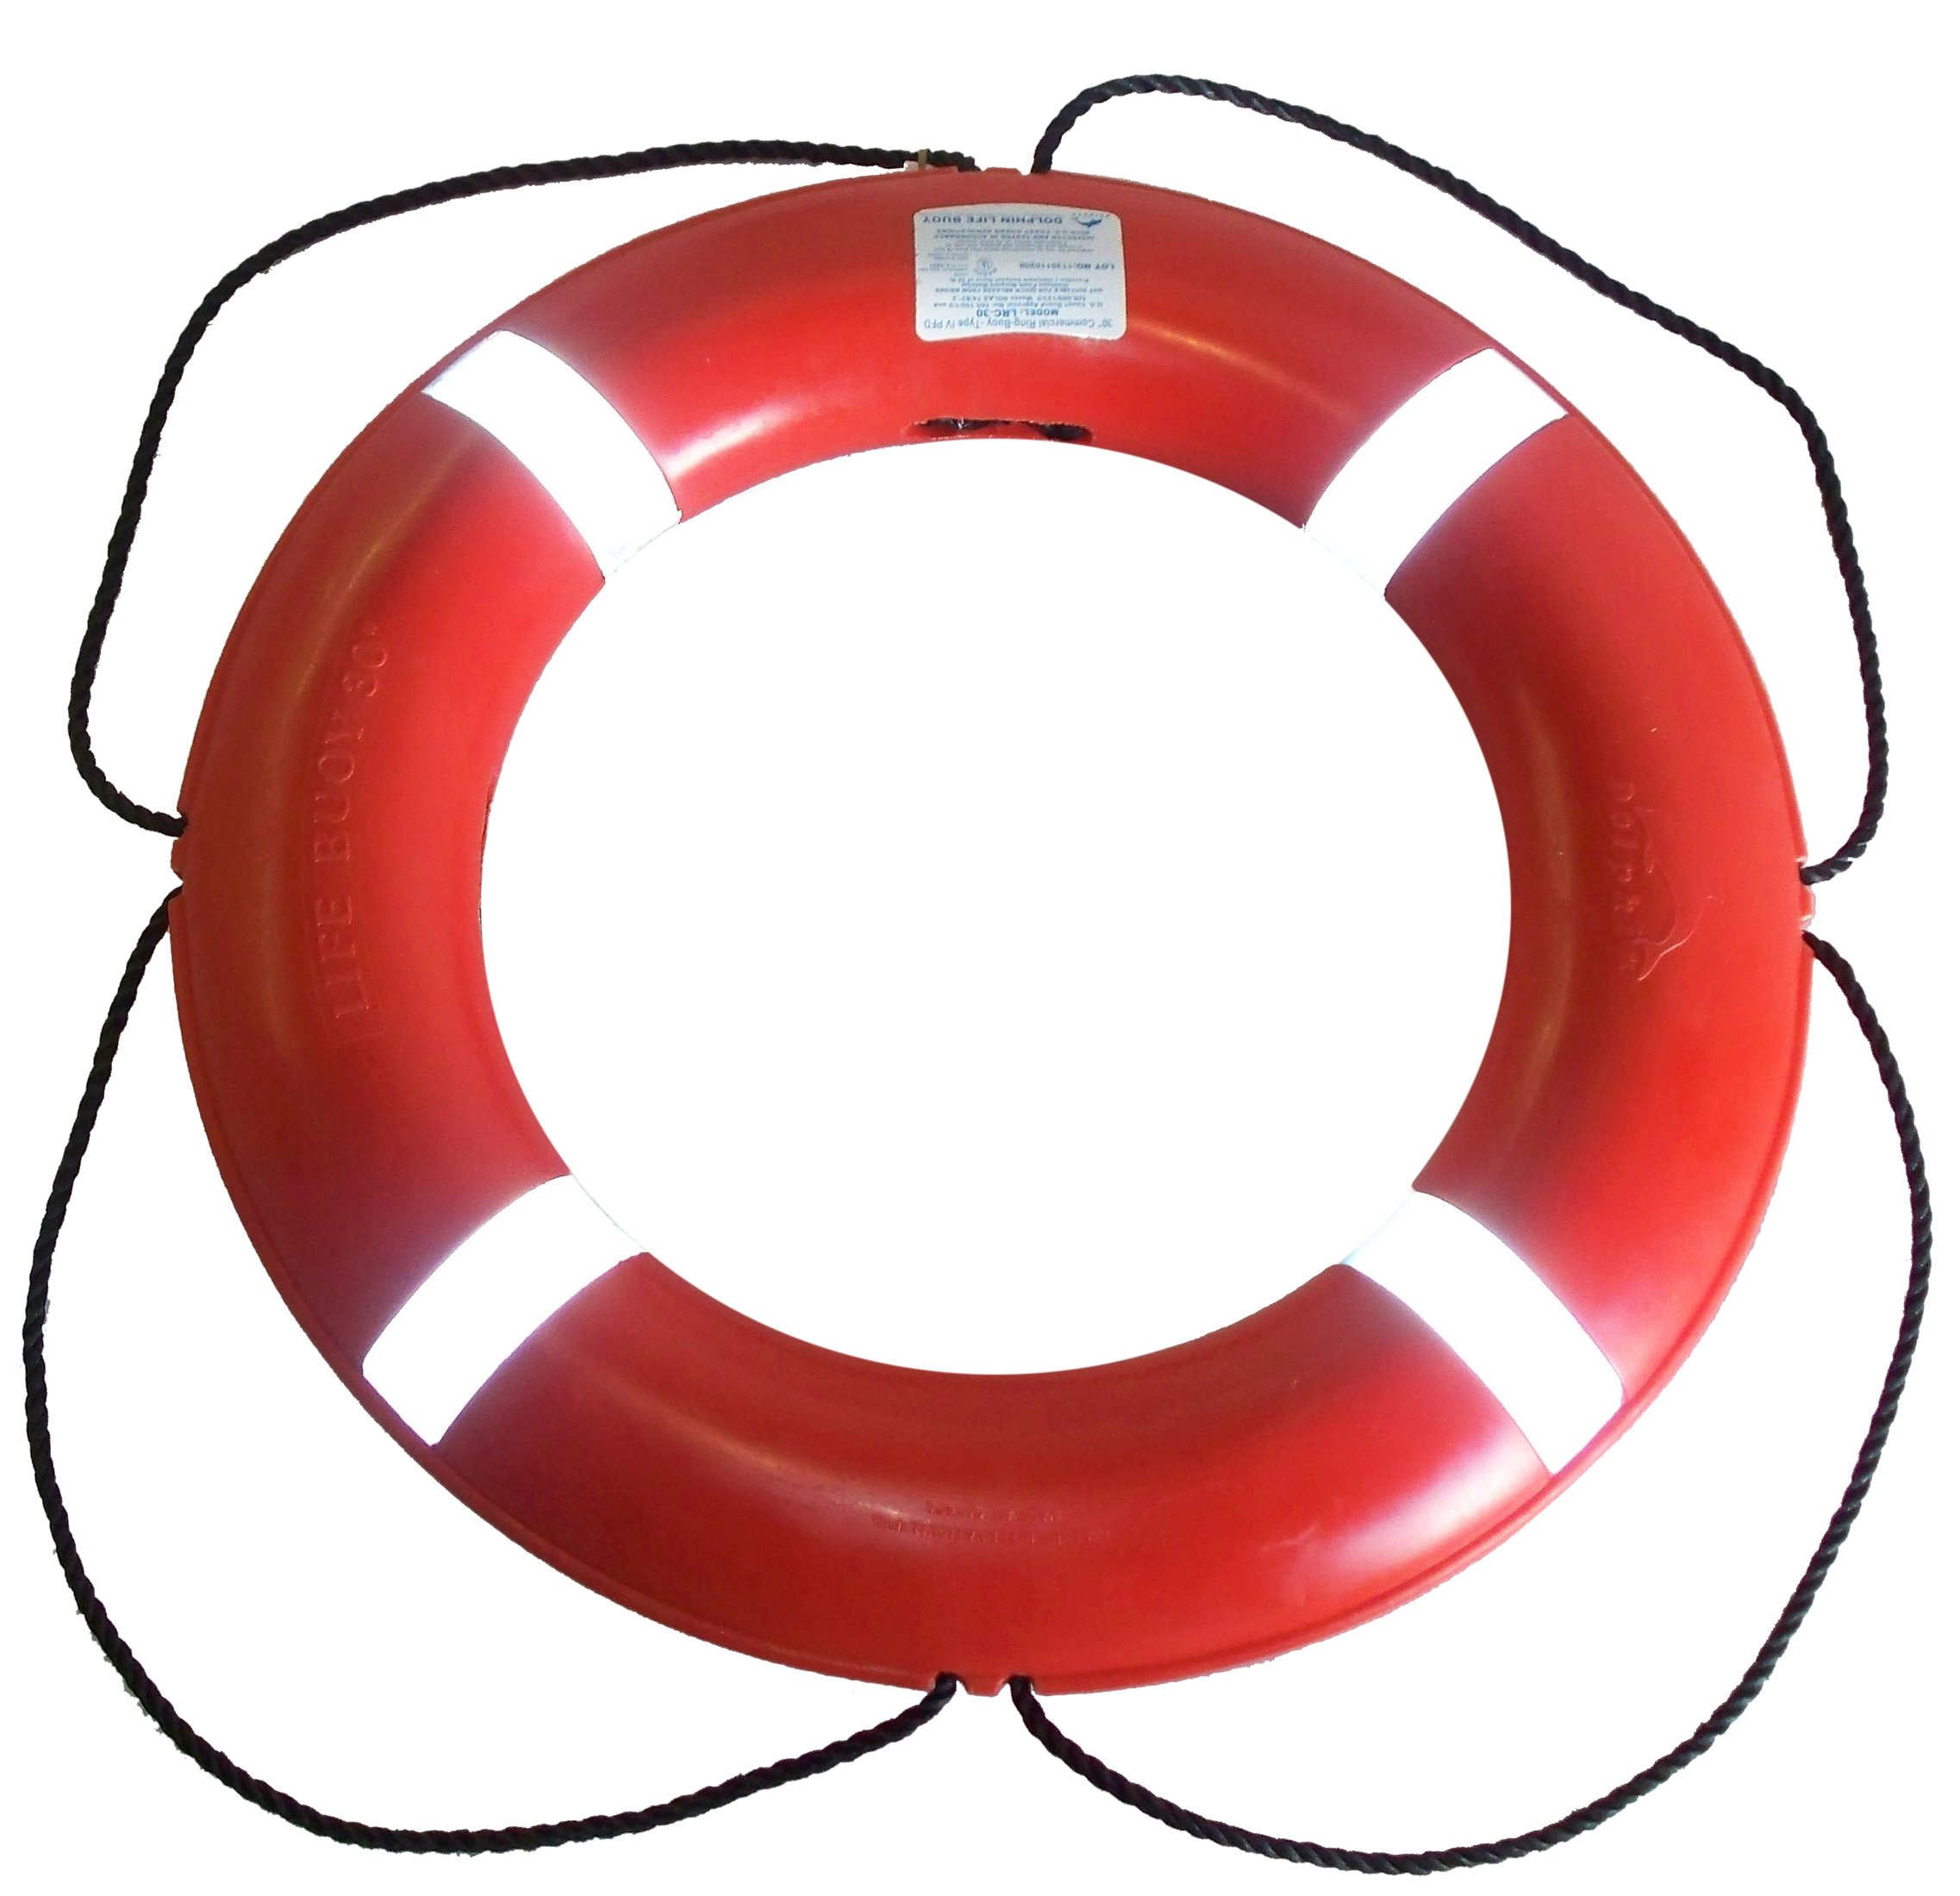 Dock Edge + Inc. USCGA Approved S.O.L.A.S. Life Ring Buoy (Orange, 30-Inch) by Dock Edge